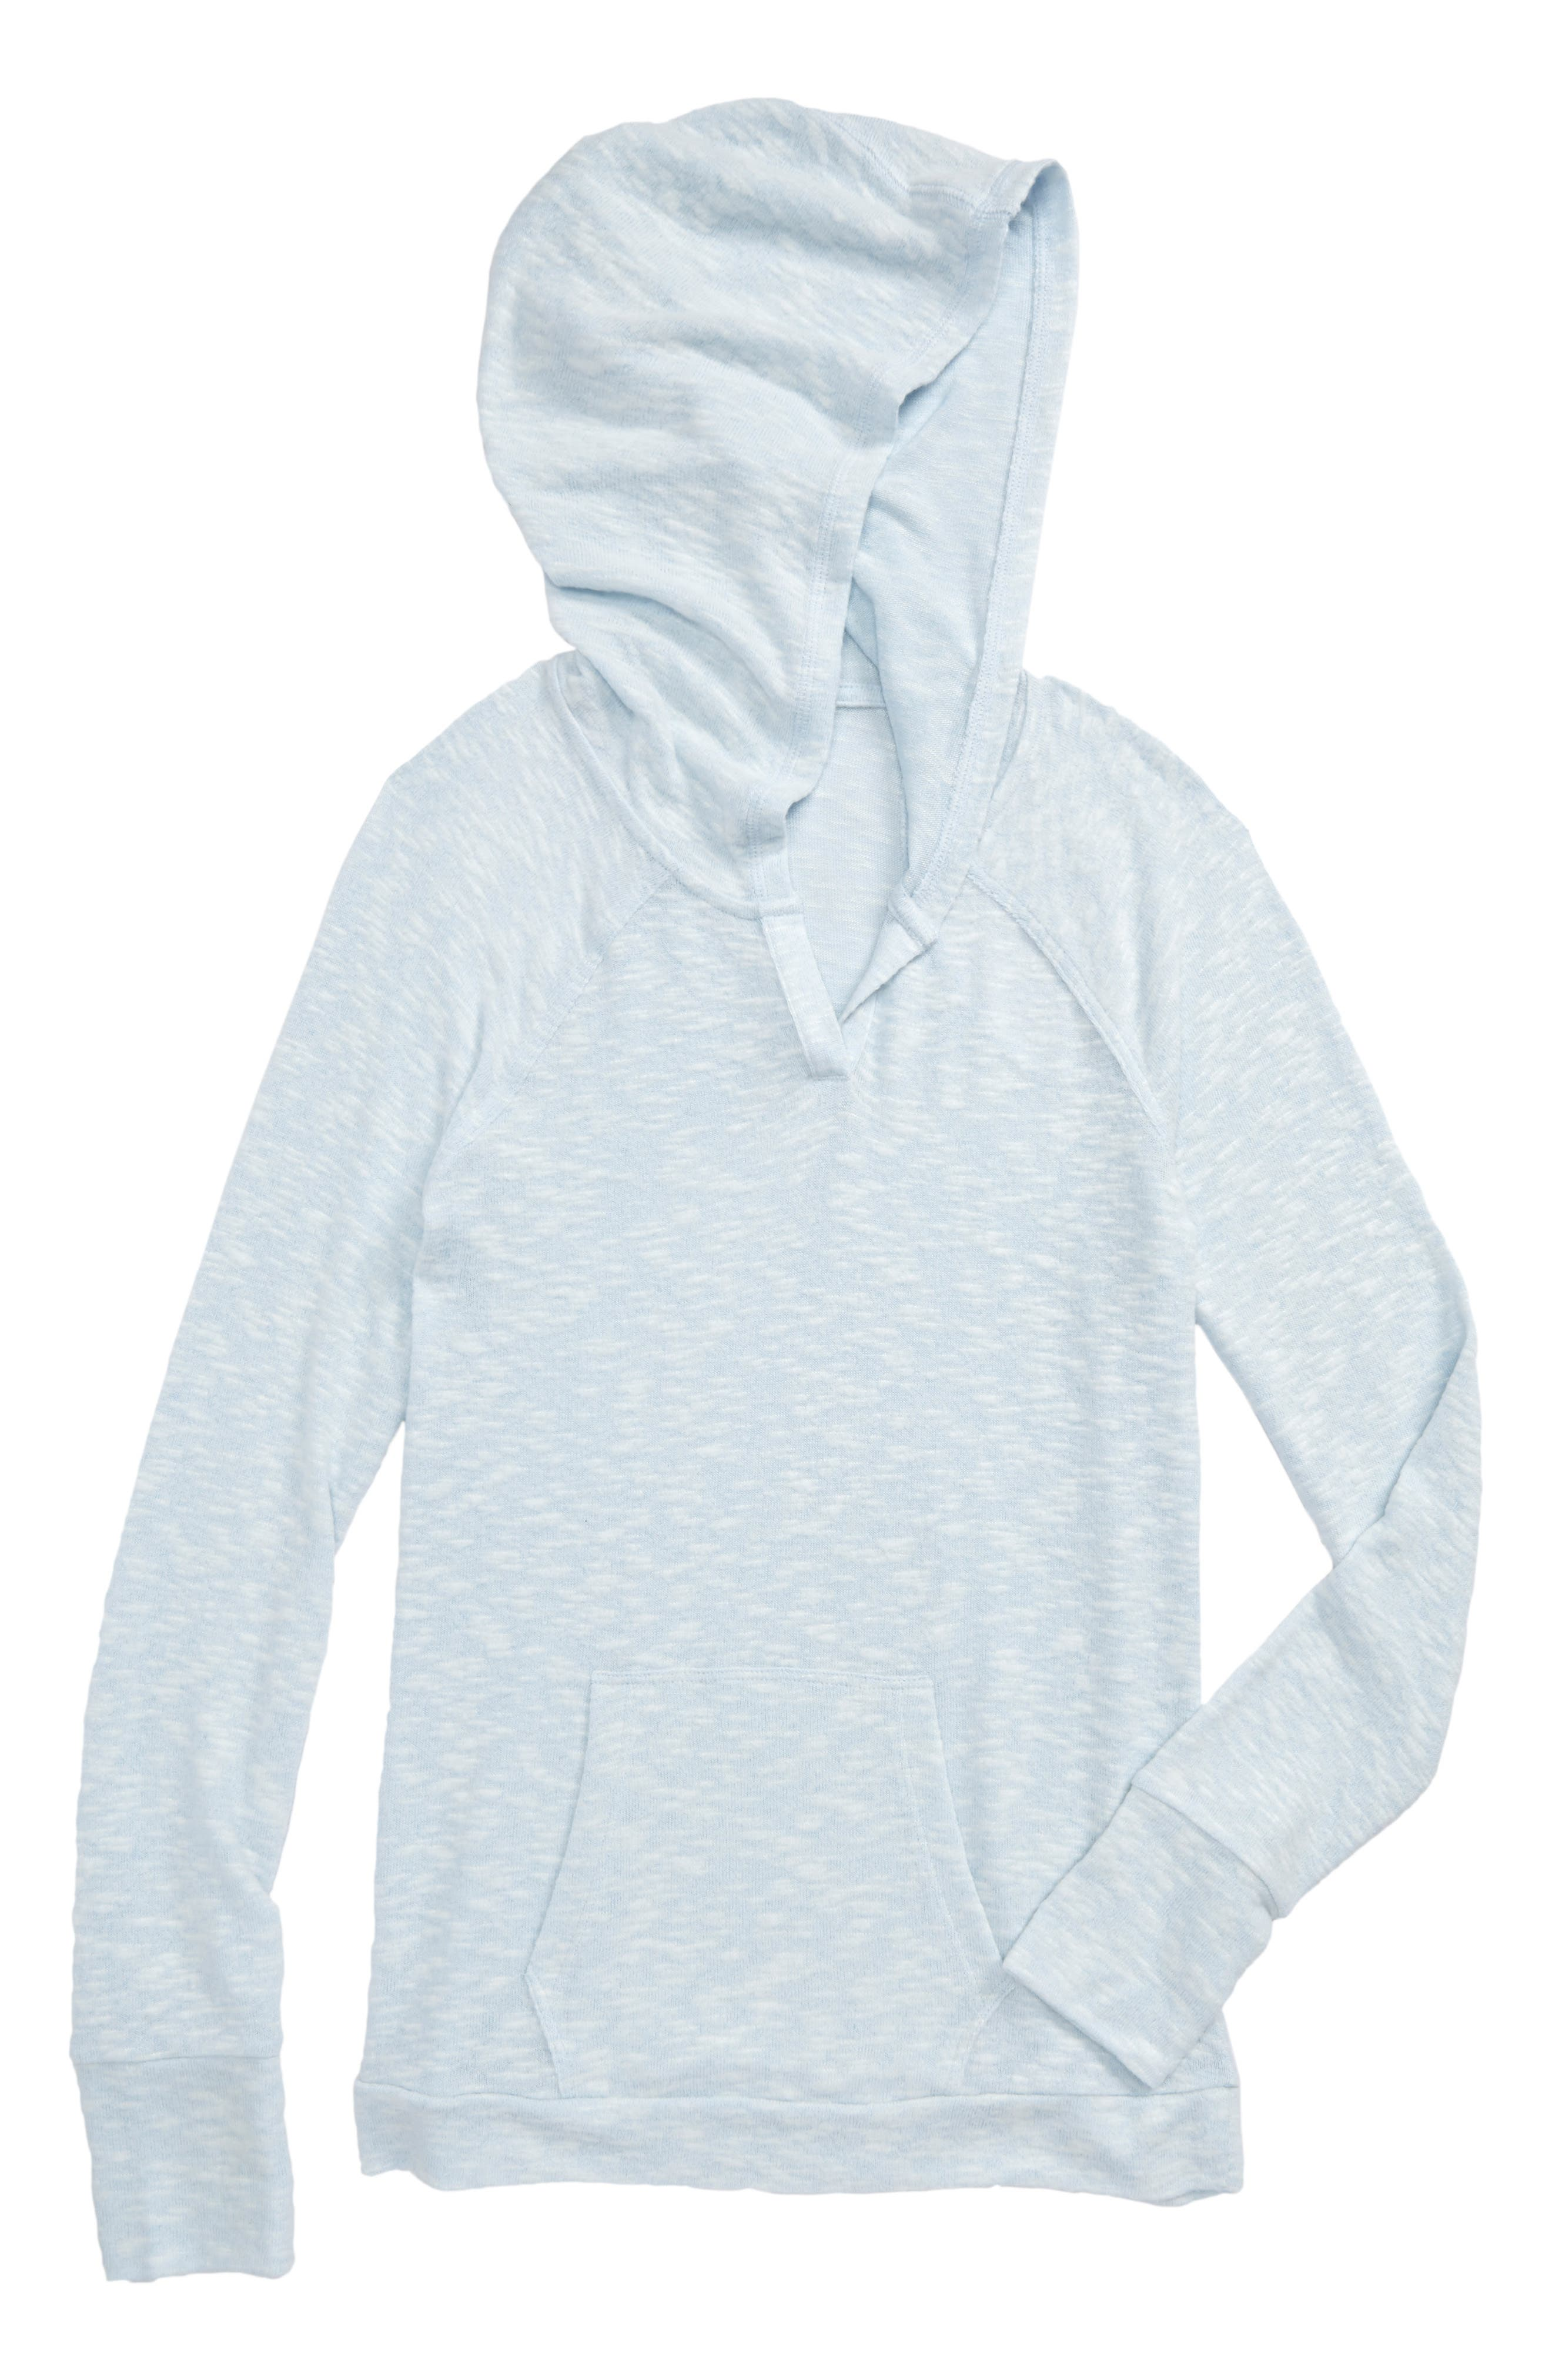 Vinyasa Cutout Hooded Pullover,                         Main,                         color, Blue Omphalodes- White